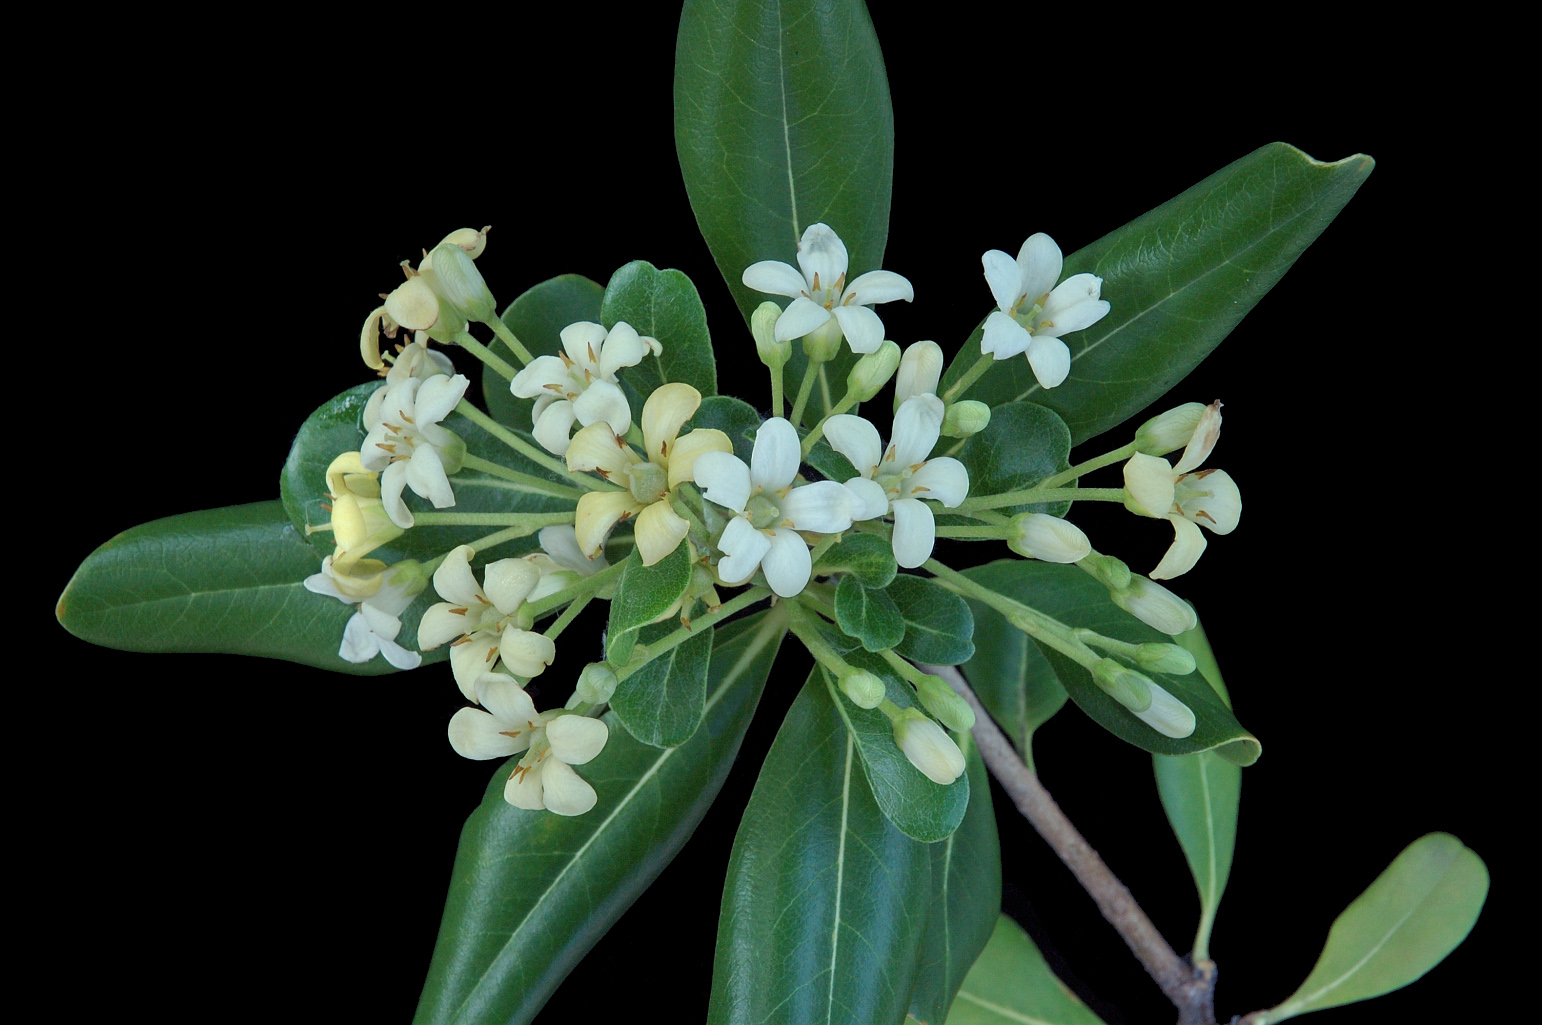 Branch with flowers arranged in a corymb; petals become yellowish as they wither